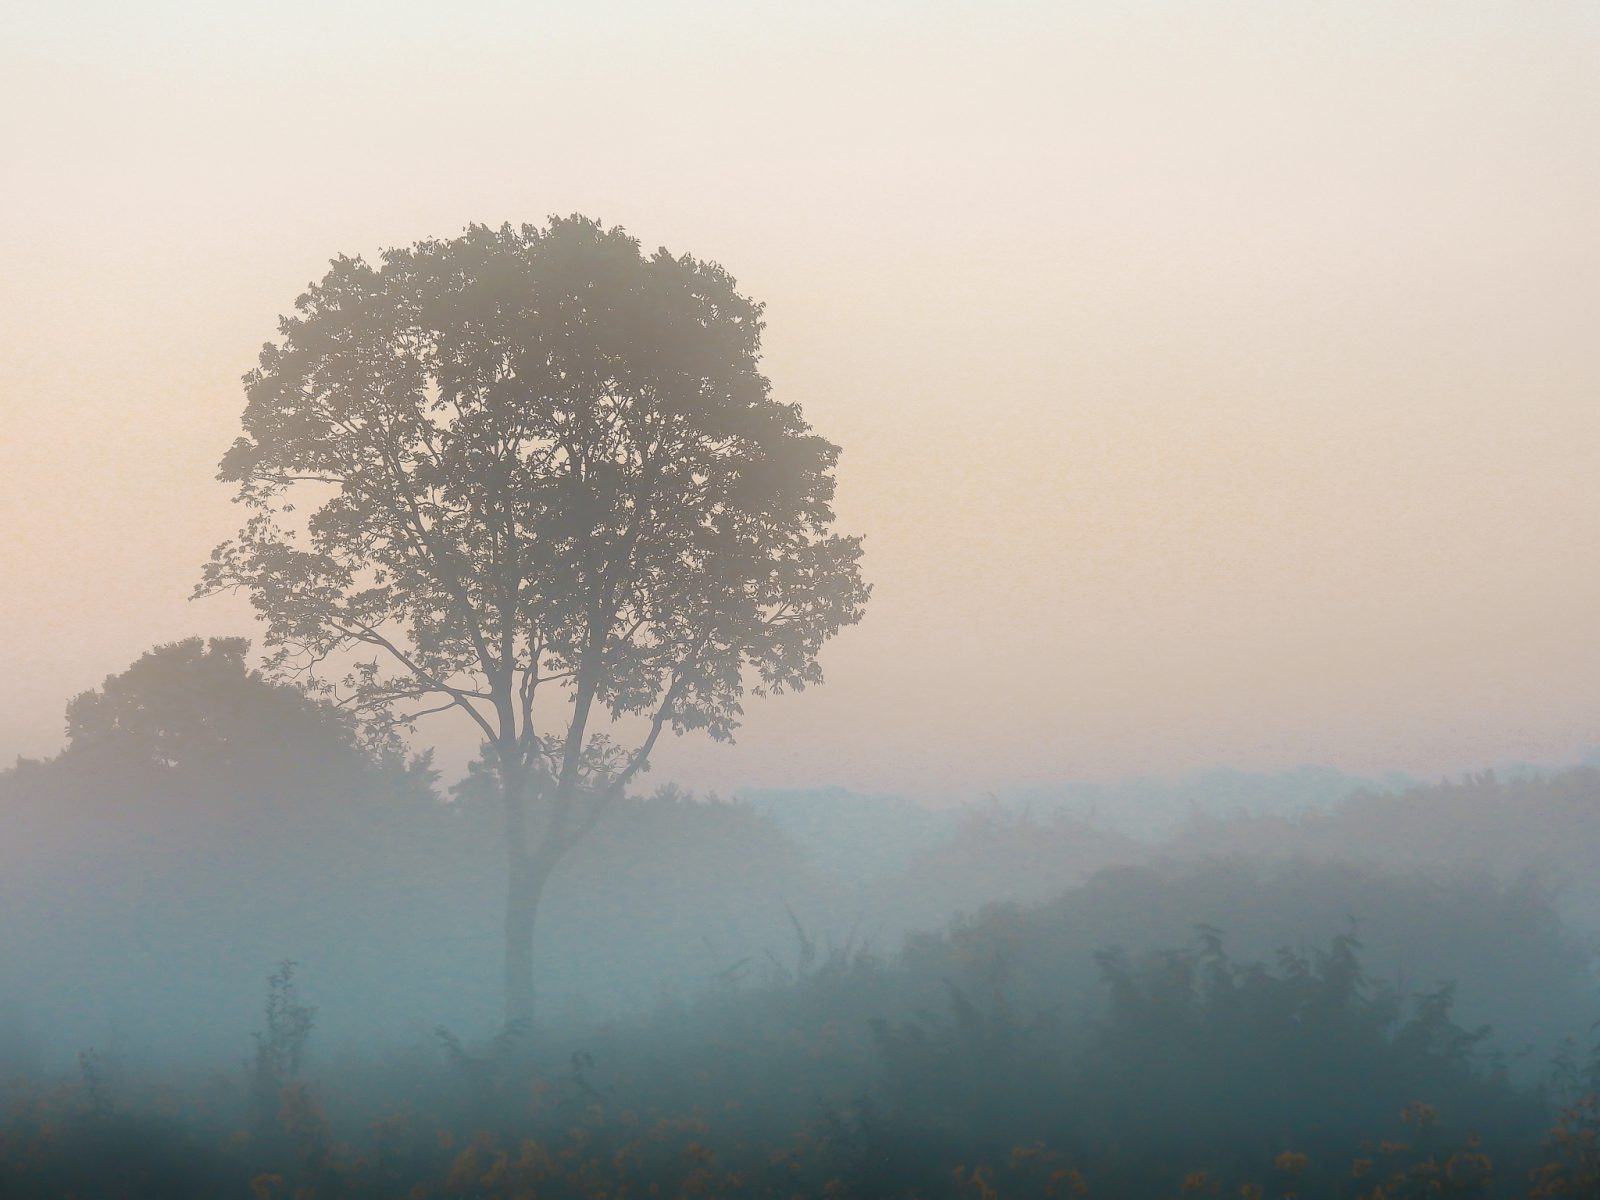 Towering Tree in the Misty Sunrise on the Prairie